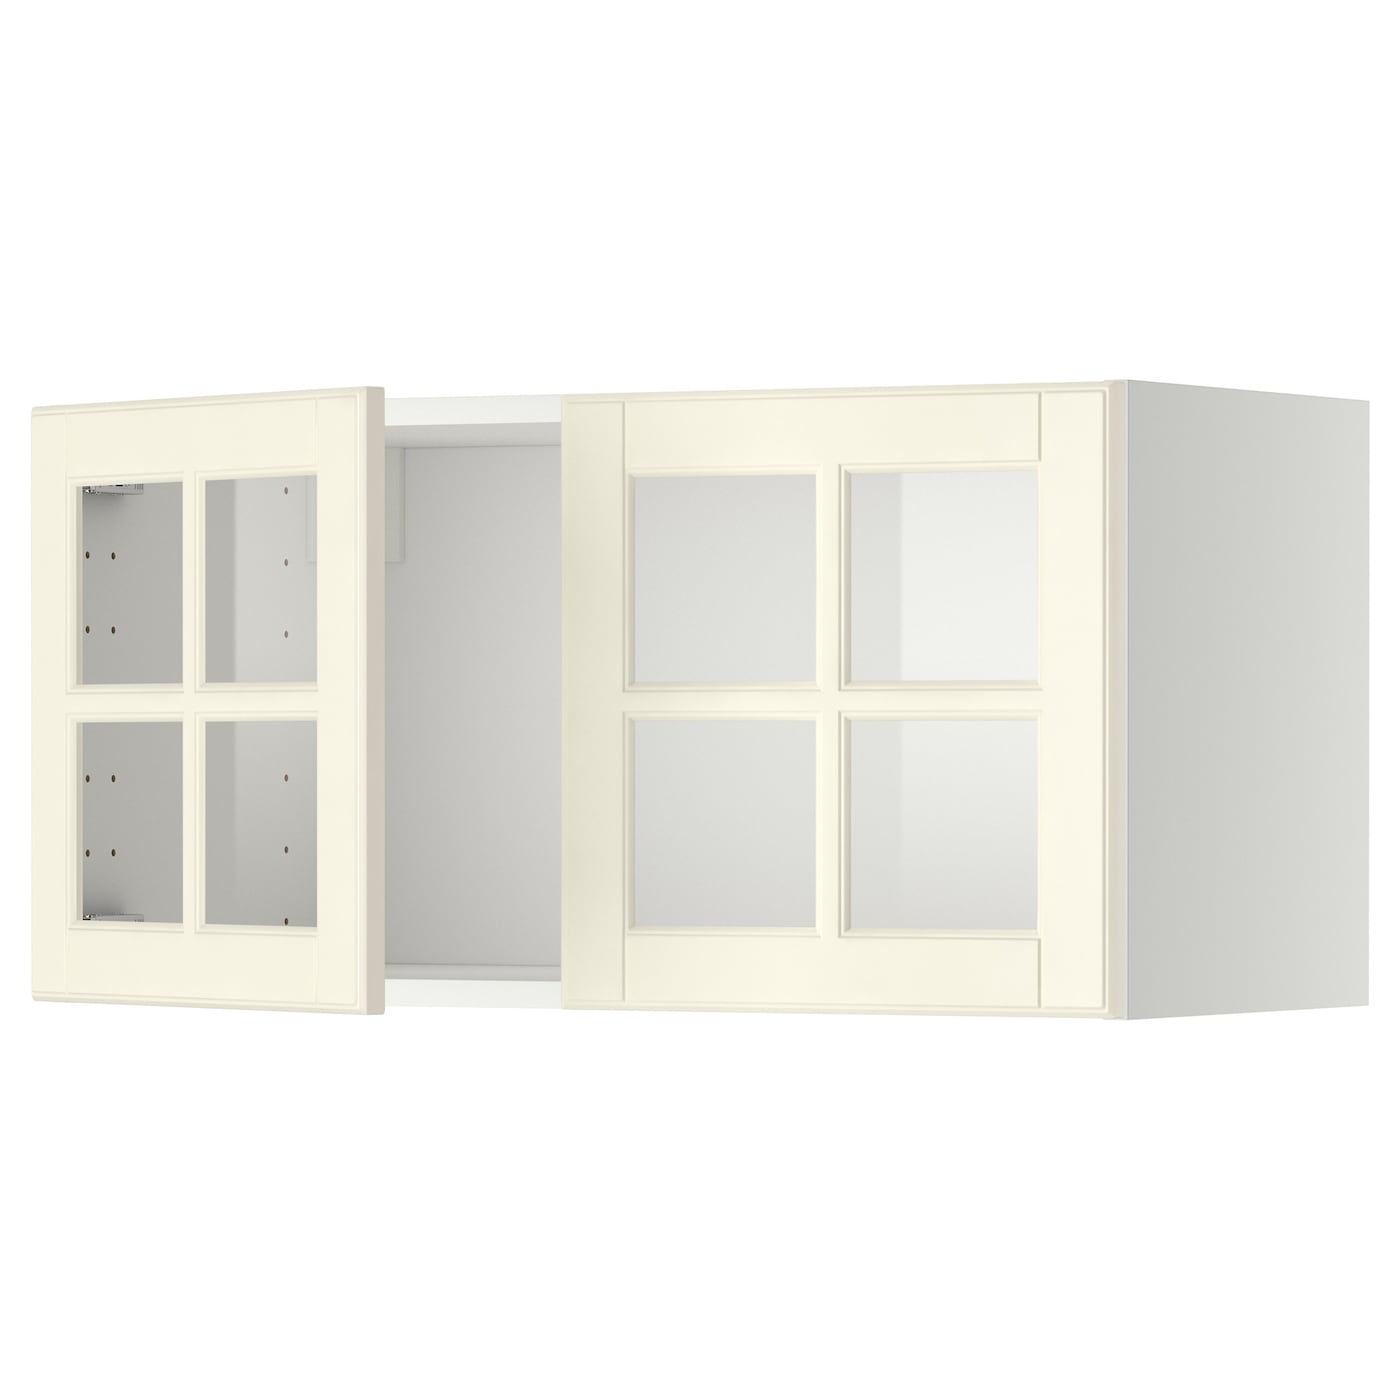 Exceptional IKEA METOD Wall Cabinet With 2 Glass Doors Sturdy Frame Construction, 18 Mm  Thick.